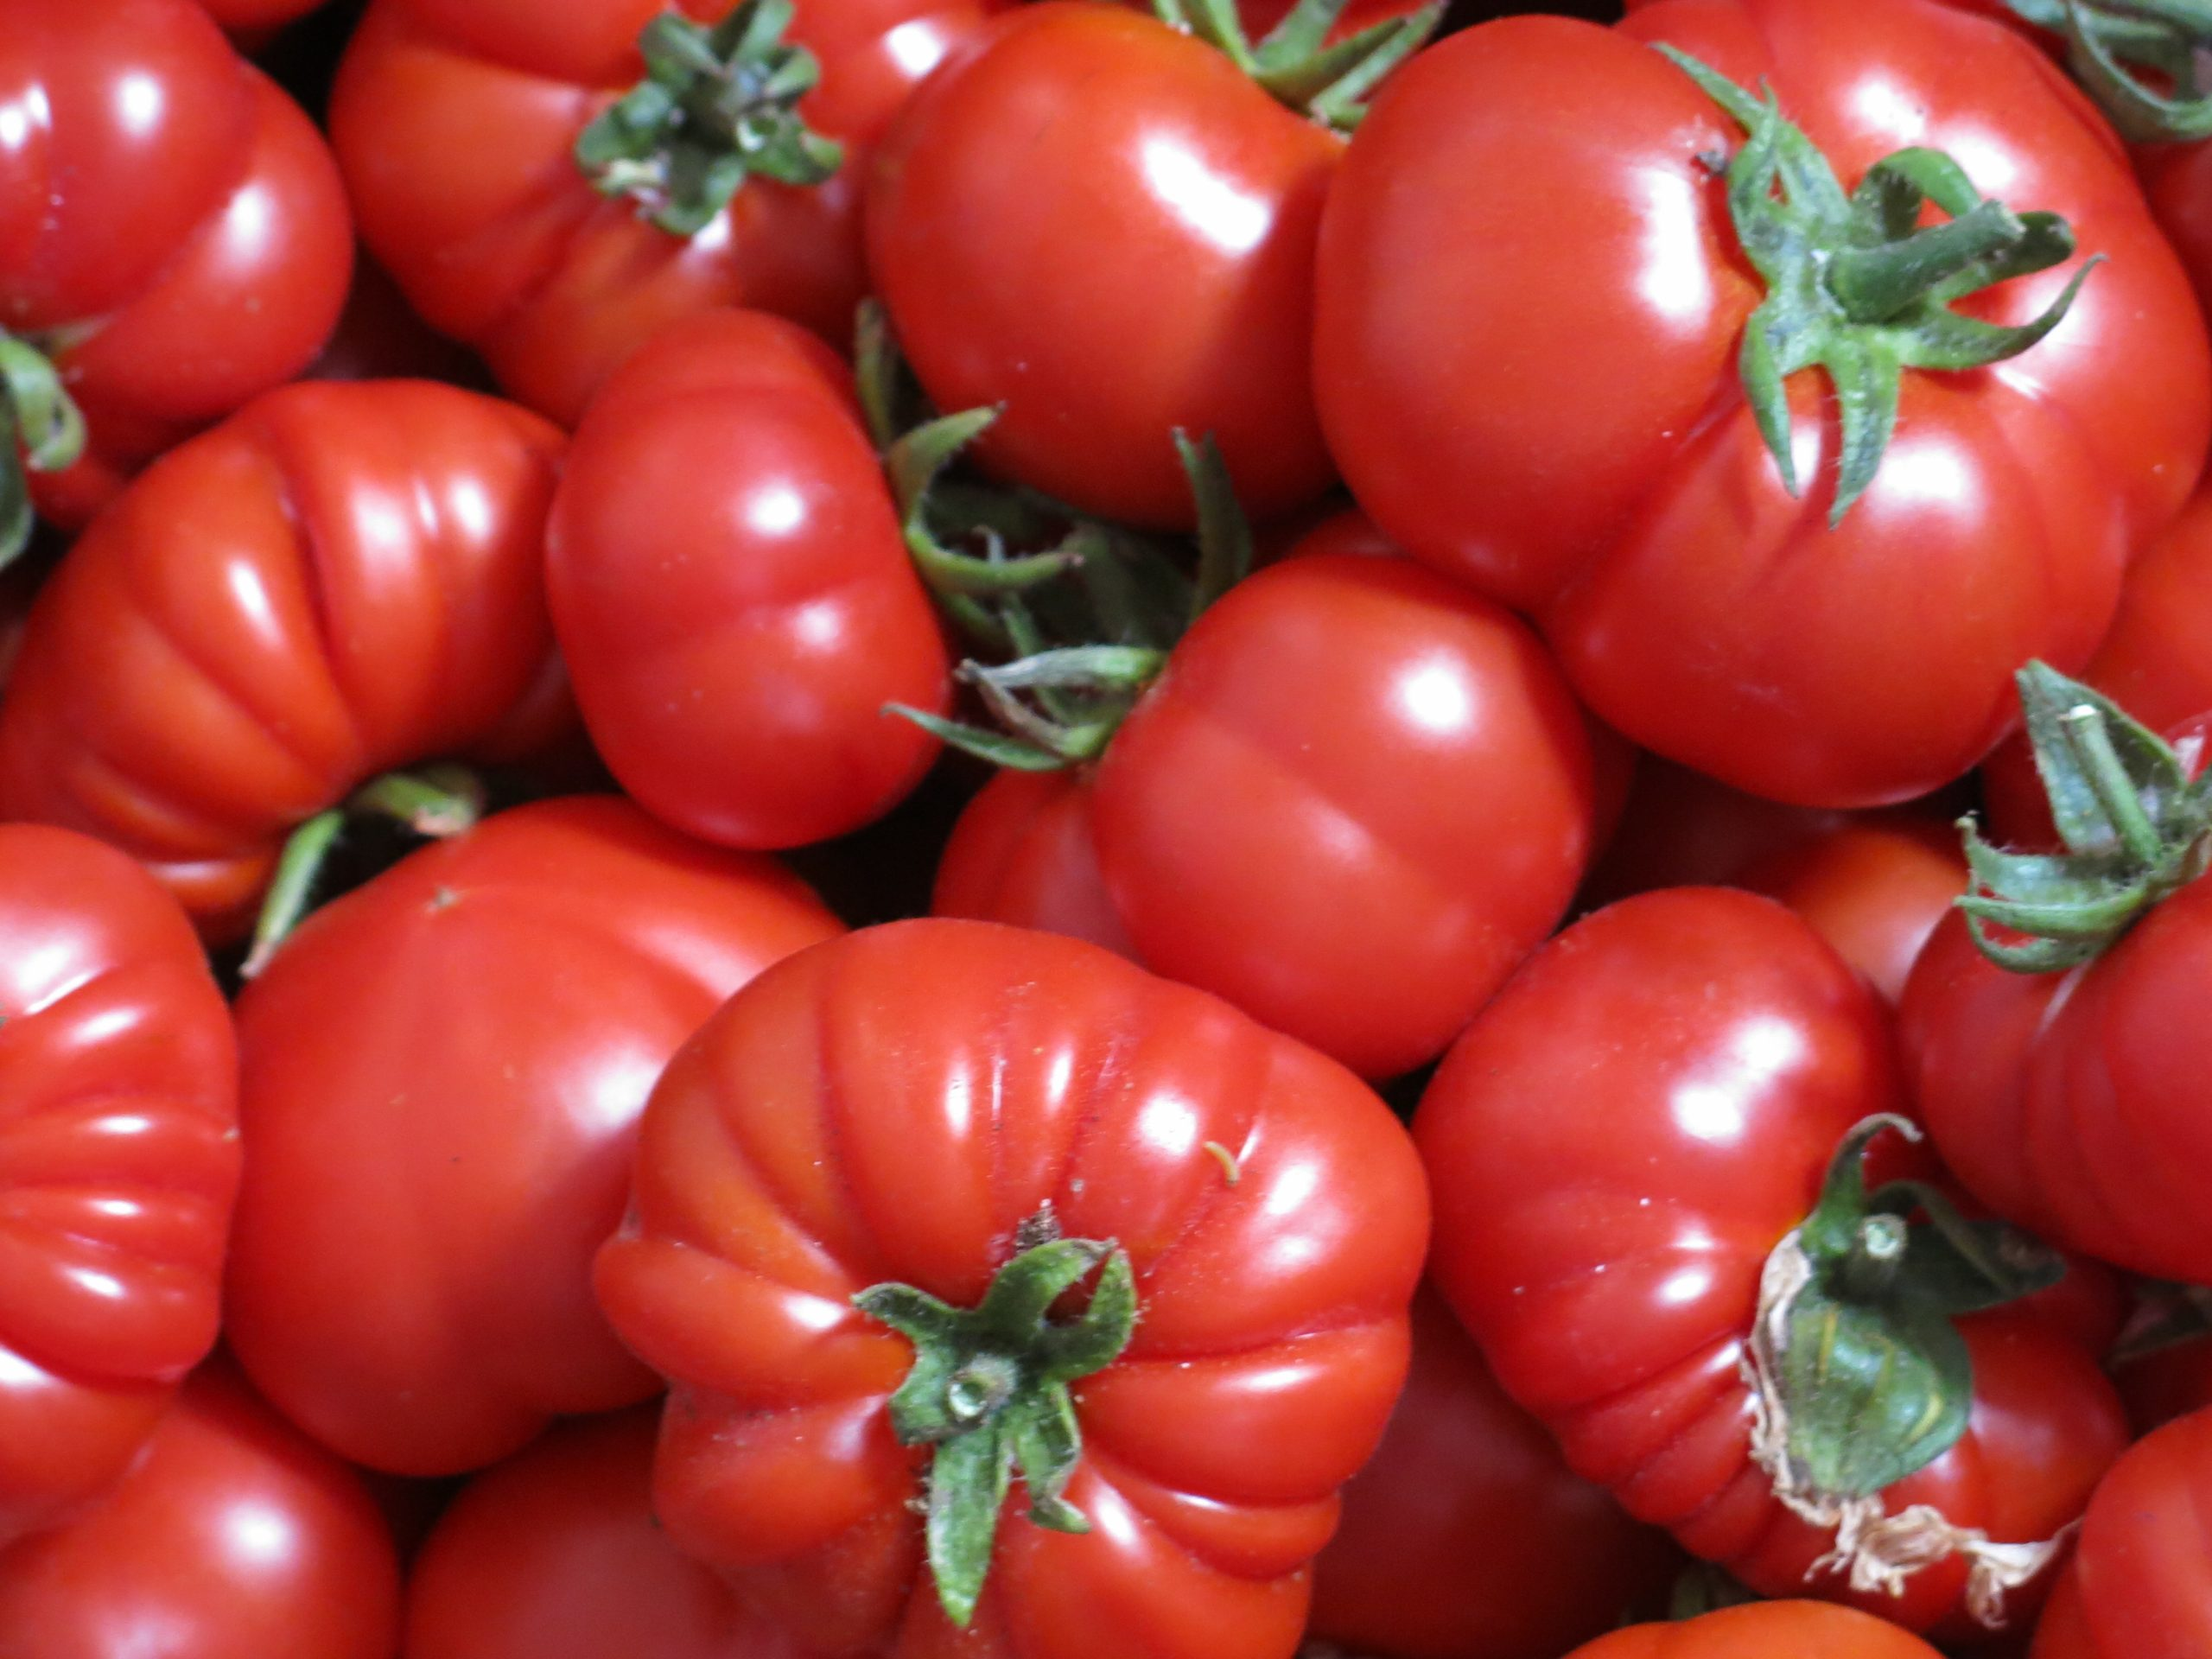 Worldwide production of tomatoes shows an upward trend, but the same can't be said for per capita consumption of fresh produce